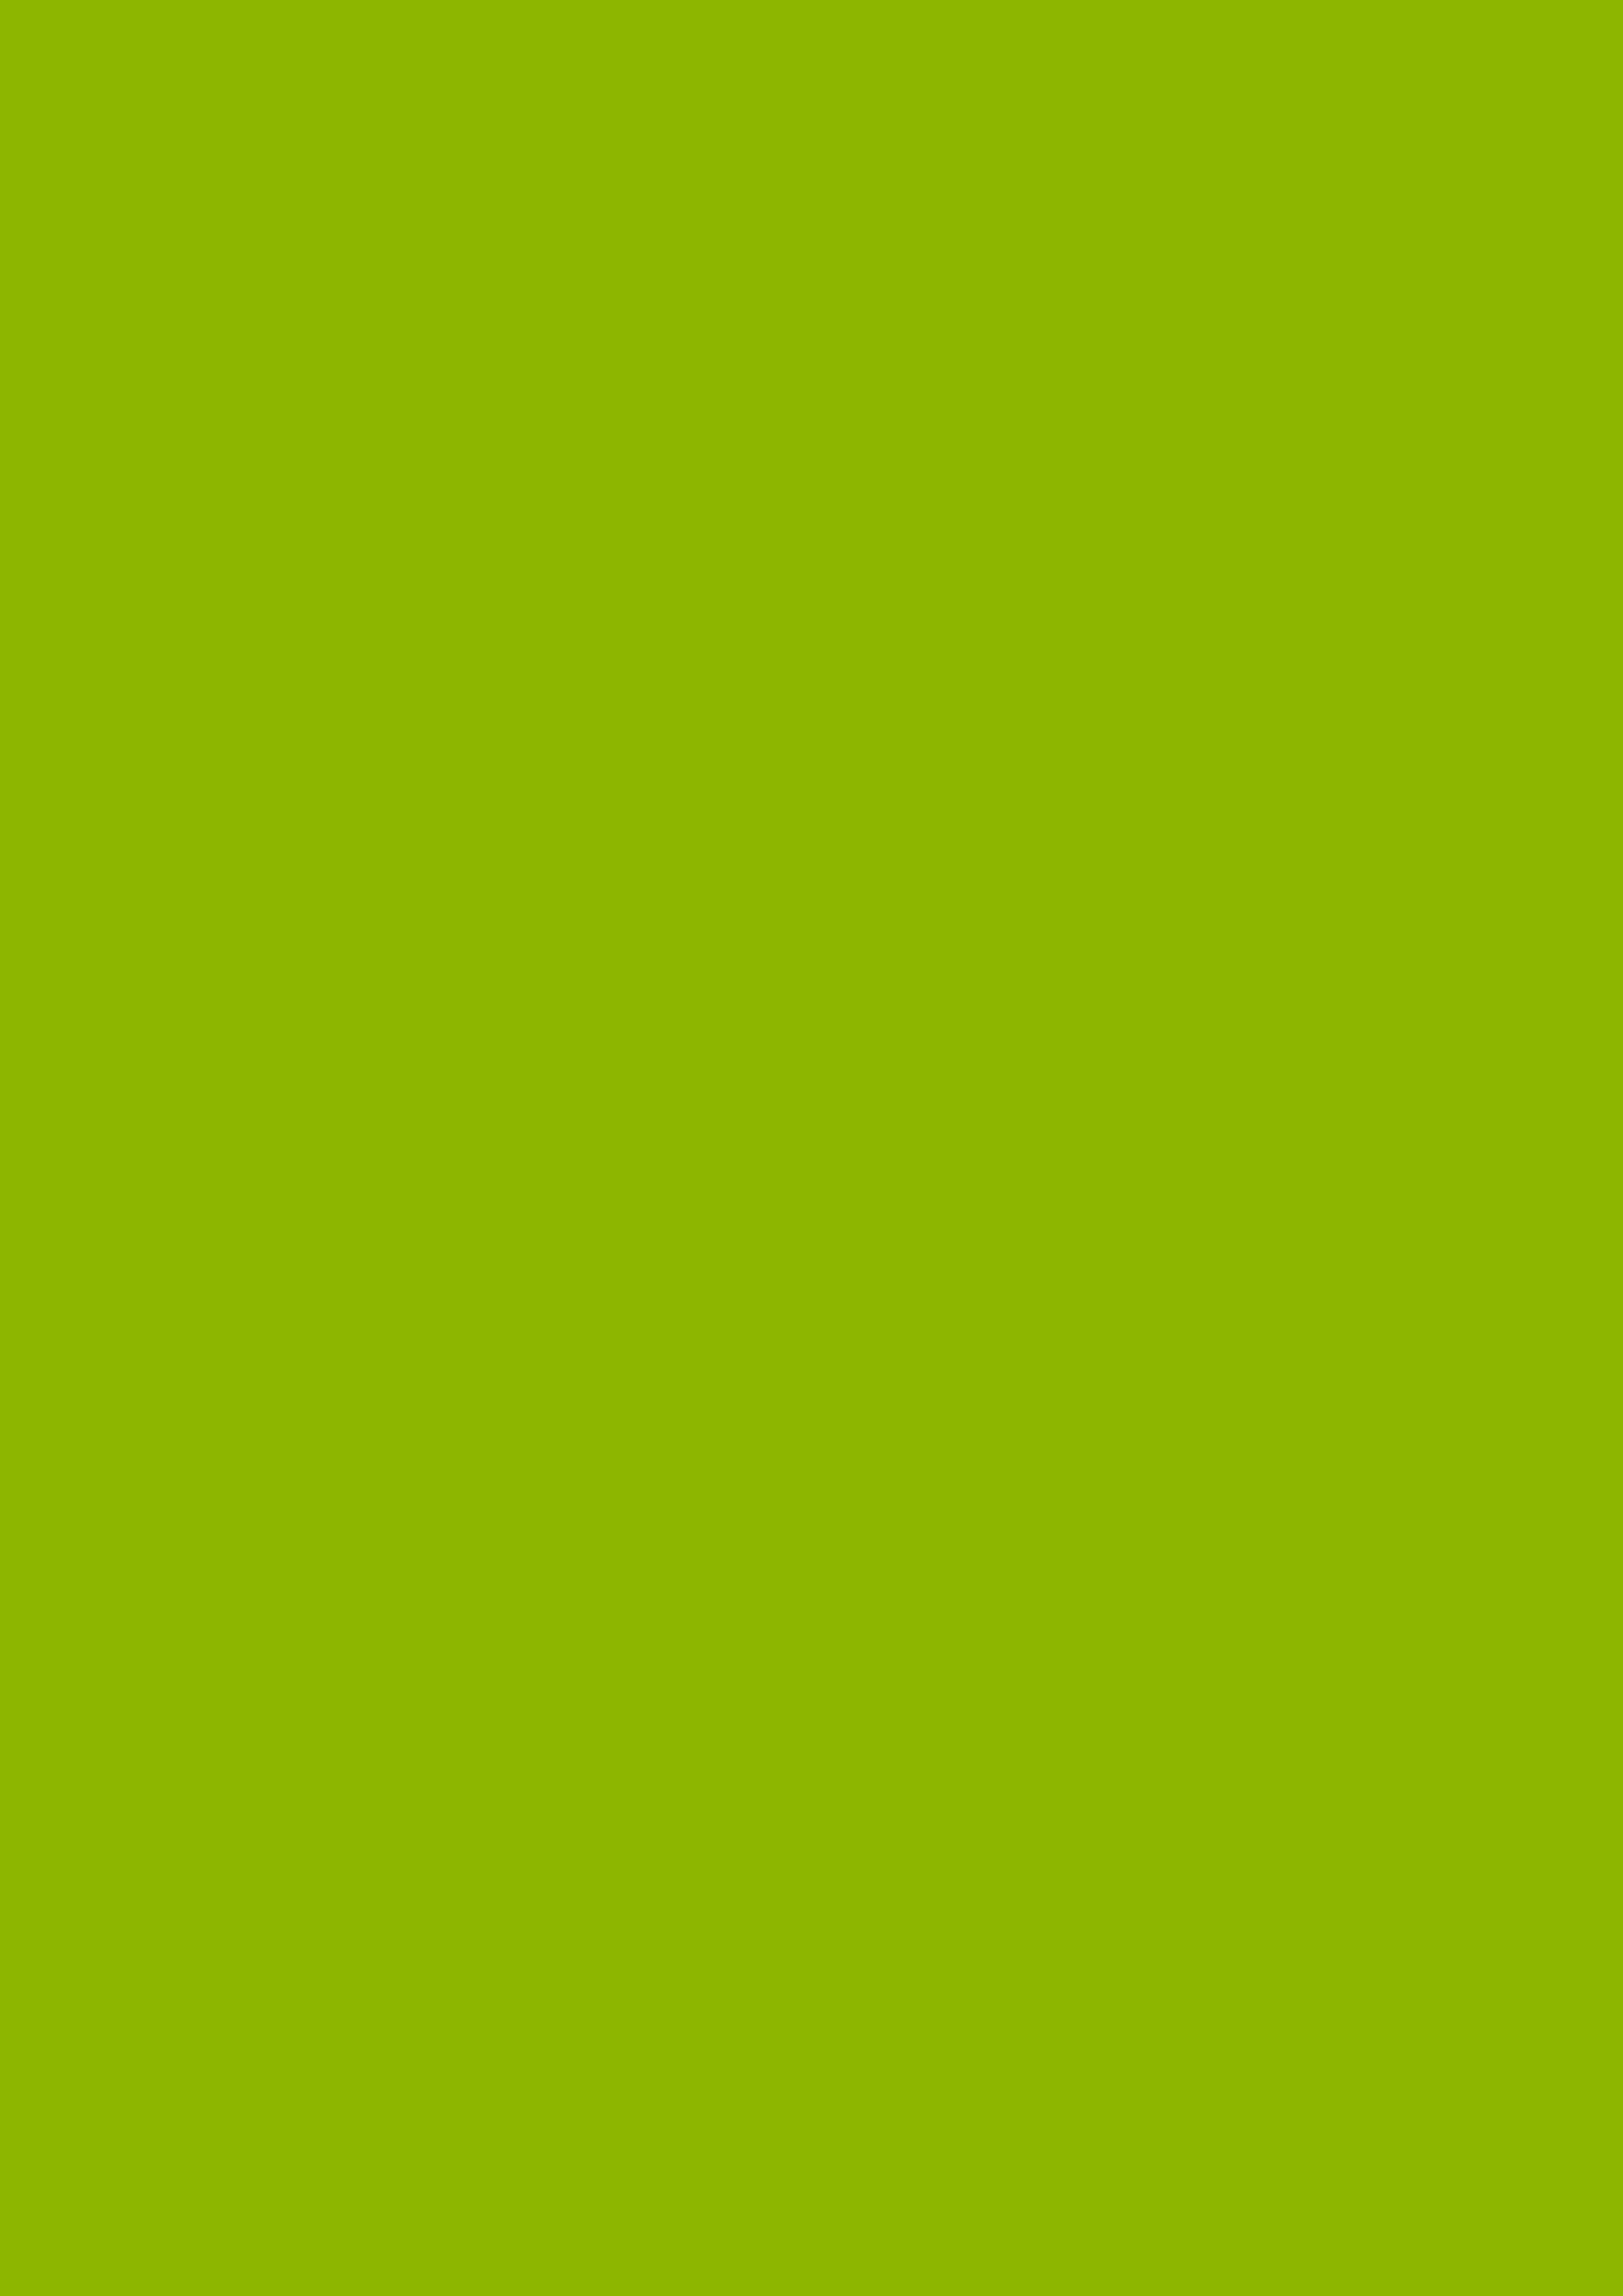 2480x3508 Apple Green Solid Color Background